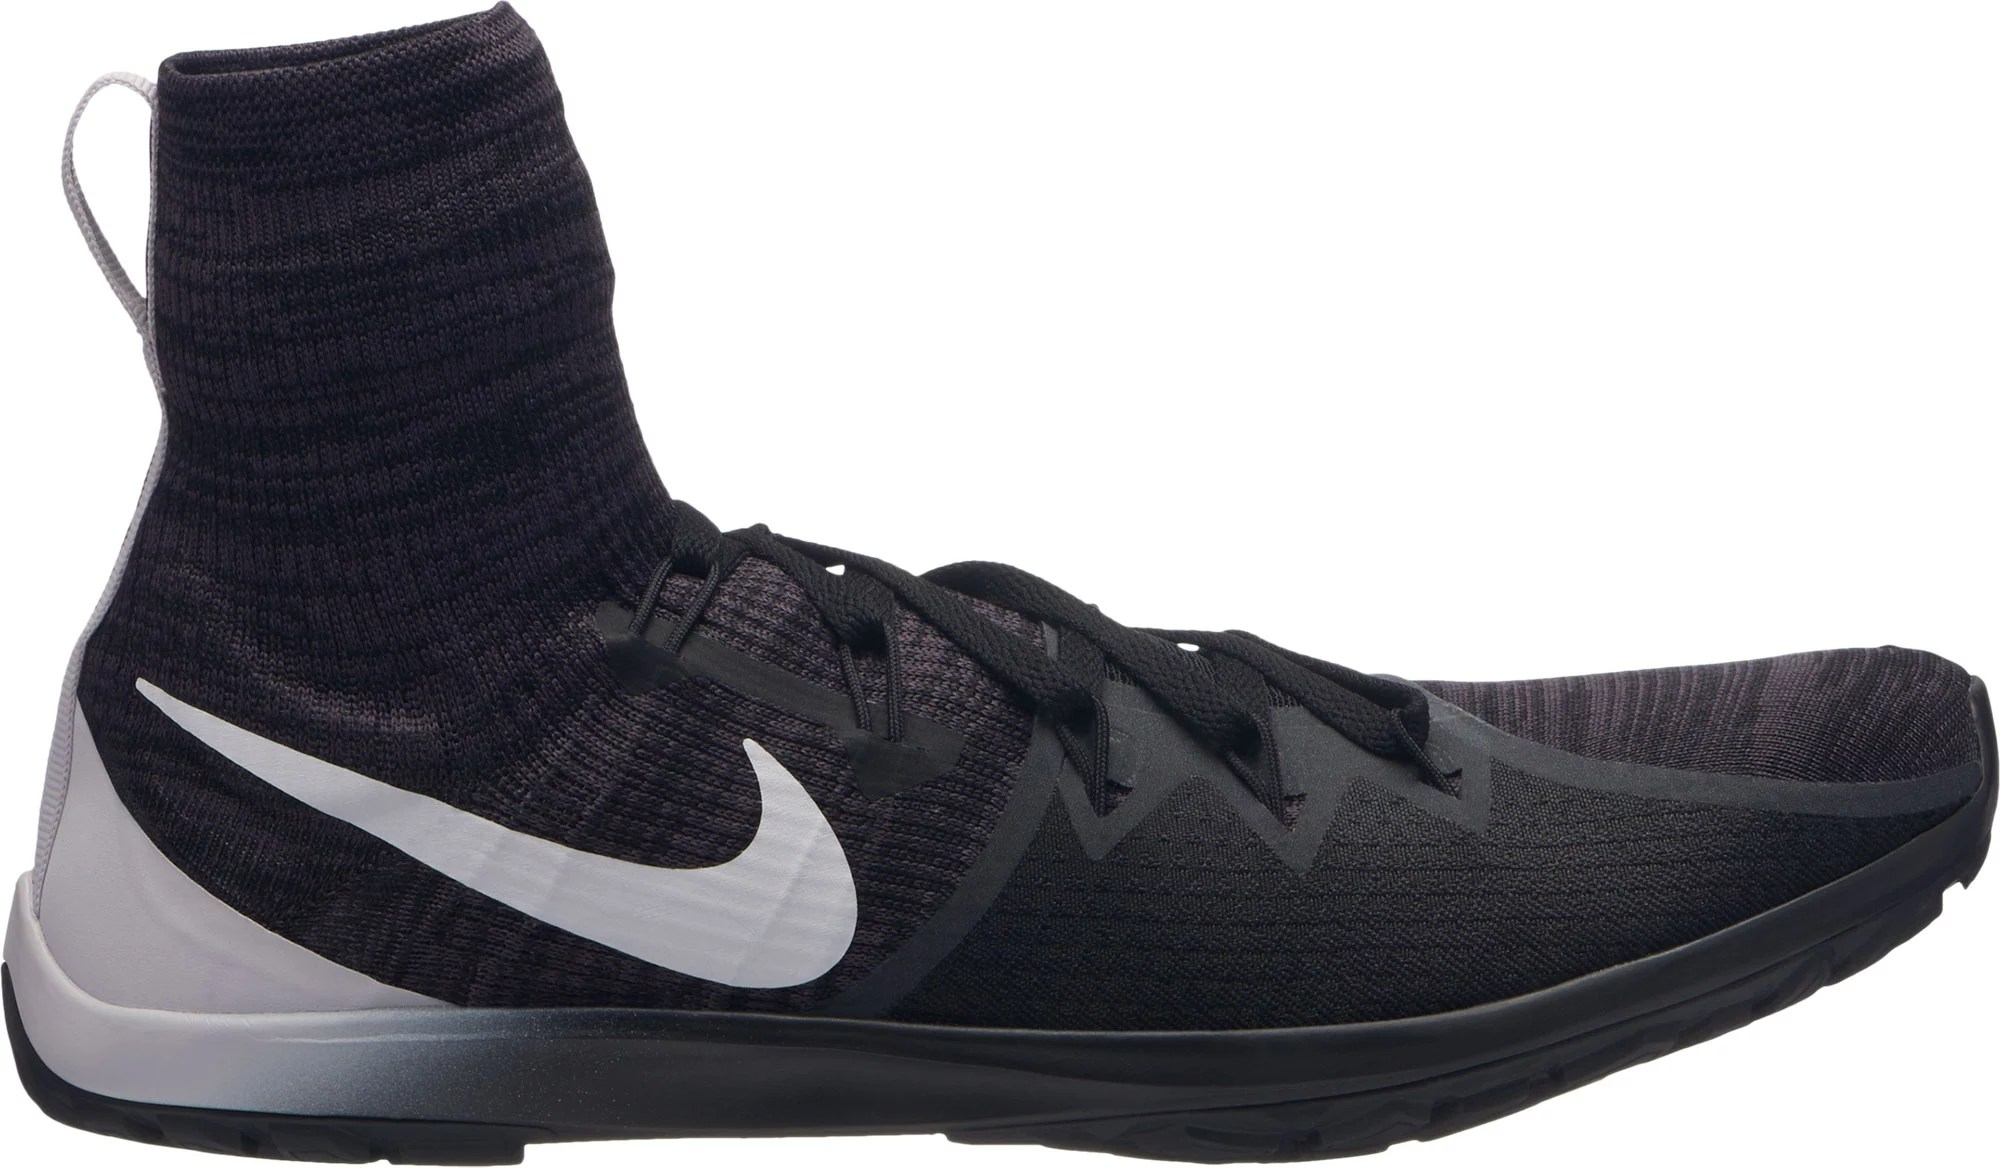 Nike Men' Zoom Victory Waffle 4 Xc Cross Country Shoes